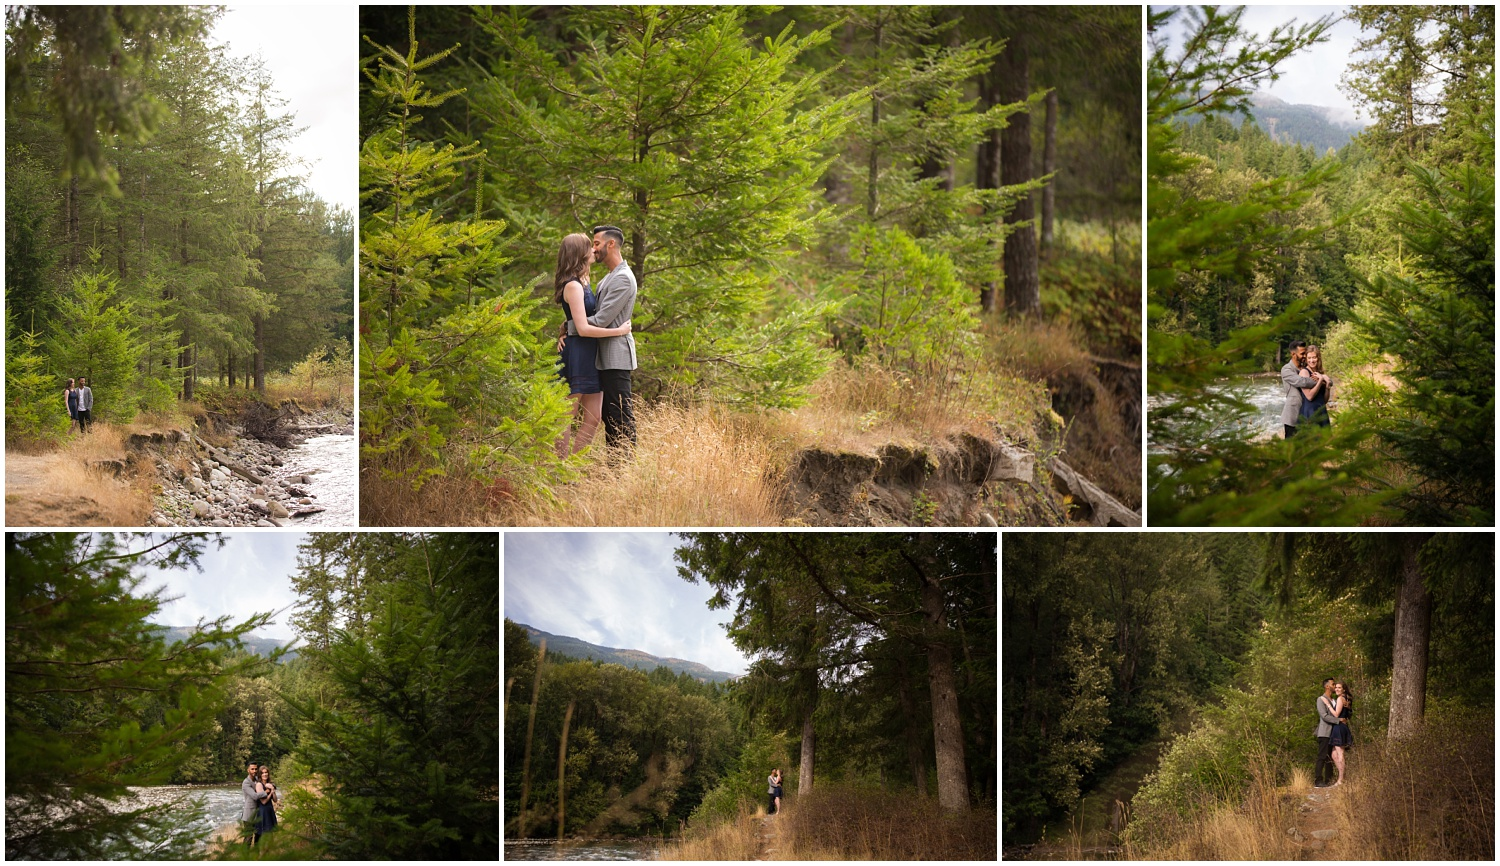 Amazind Day Photography - Chilliwack River Engagement Session - Chilliwack Engagement Photographer - Langley Engagement Photographer (2).jpg